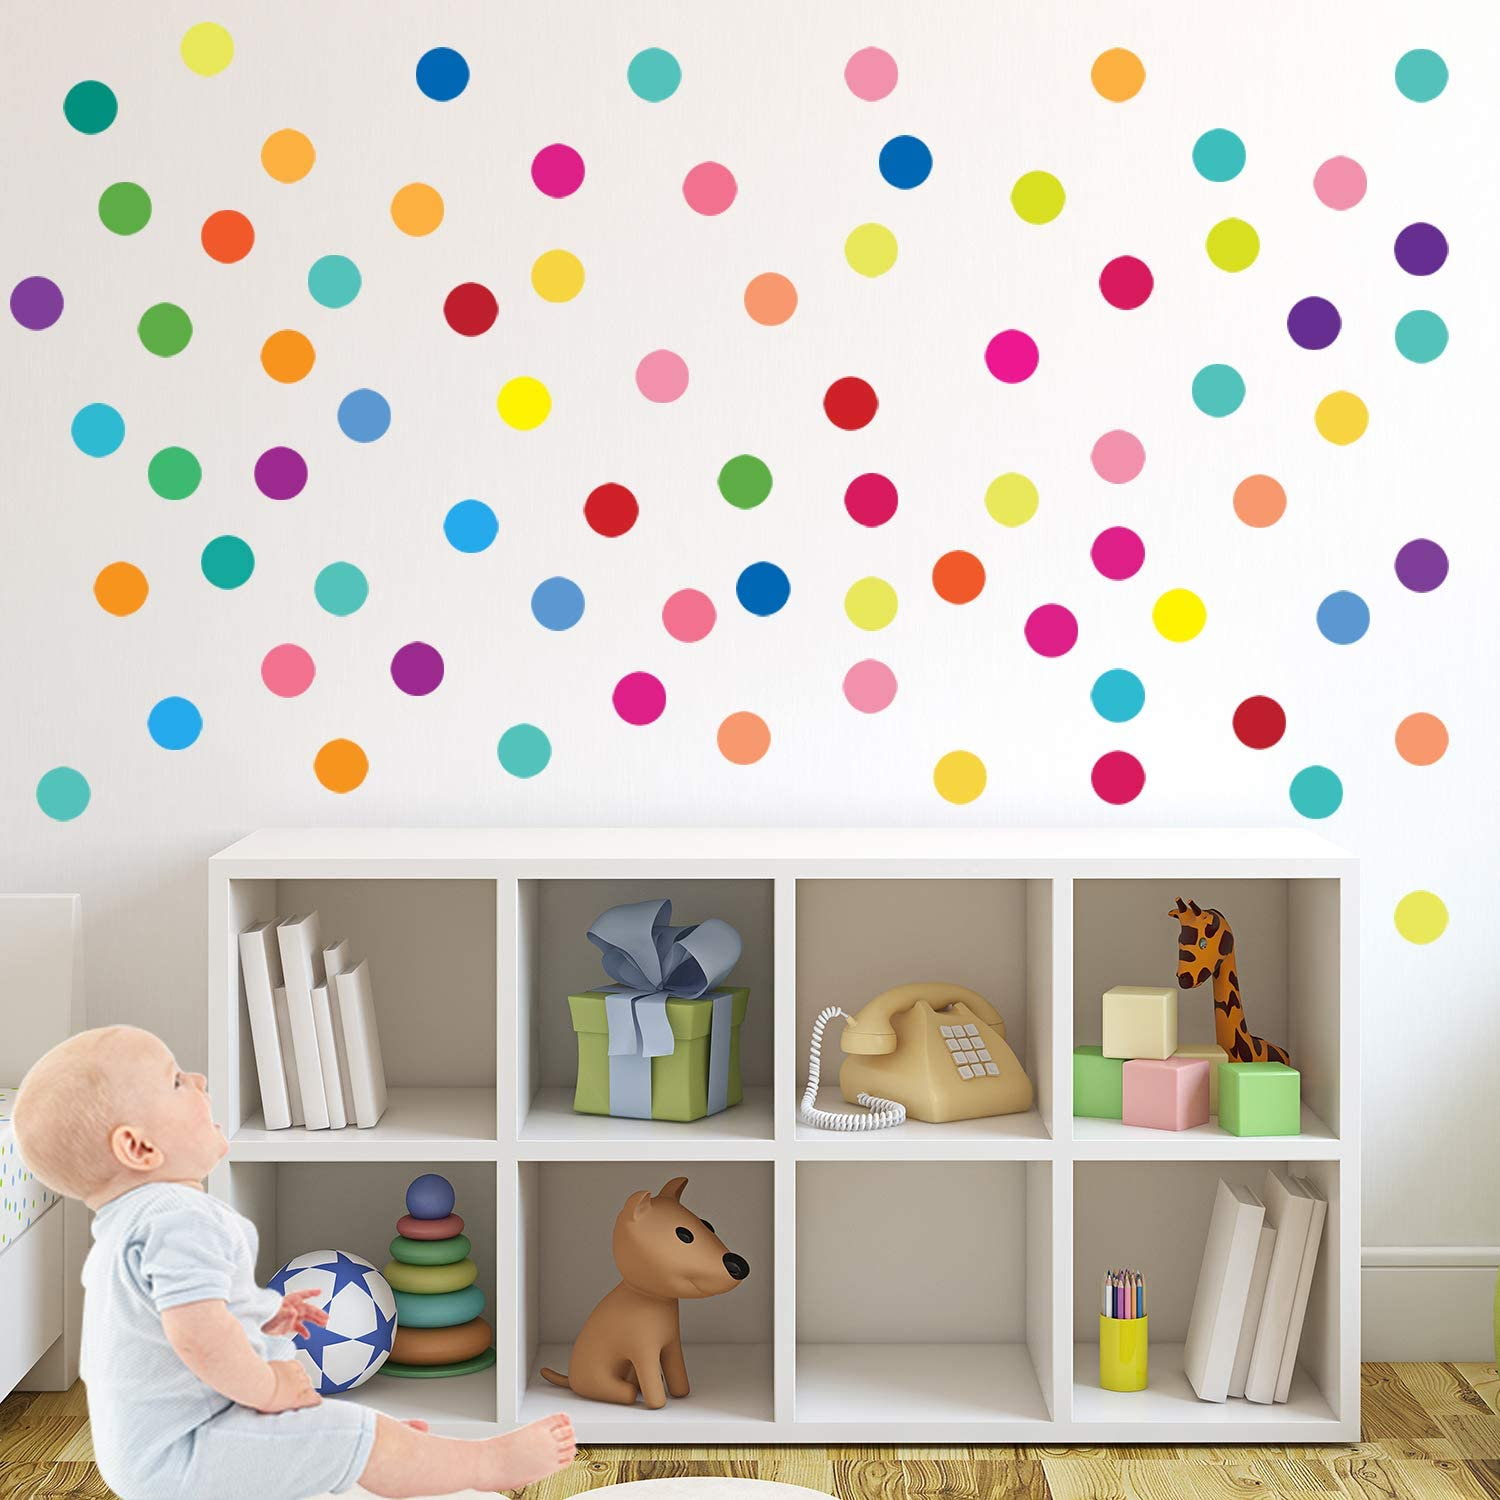 PARLAIM 130 PCS 4-1 Inch Rainbow Multi Size Wall Stickers, Peel and Stick Dot Decals Polka Dot Wall Decals for Room, Living Room, Bedroom, Classroom Decorations Multicolor